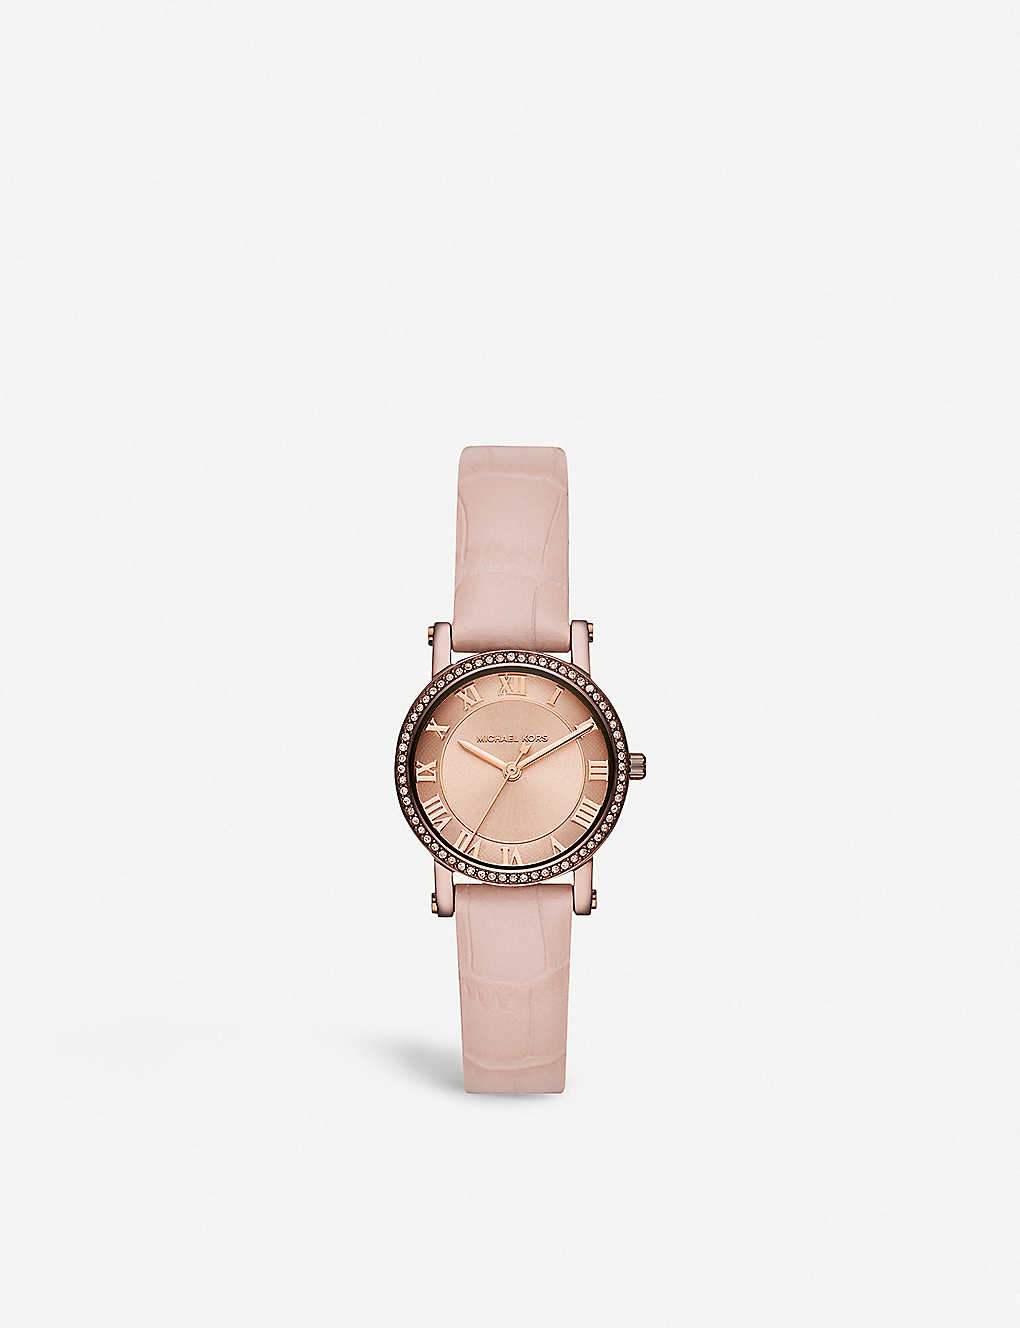 2639ac349f MICHAEL KORS - MK2723 Norie rose gold-toned stainless steel and ...